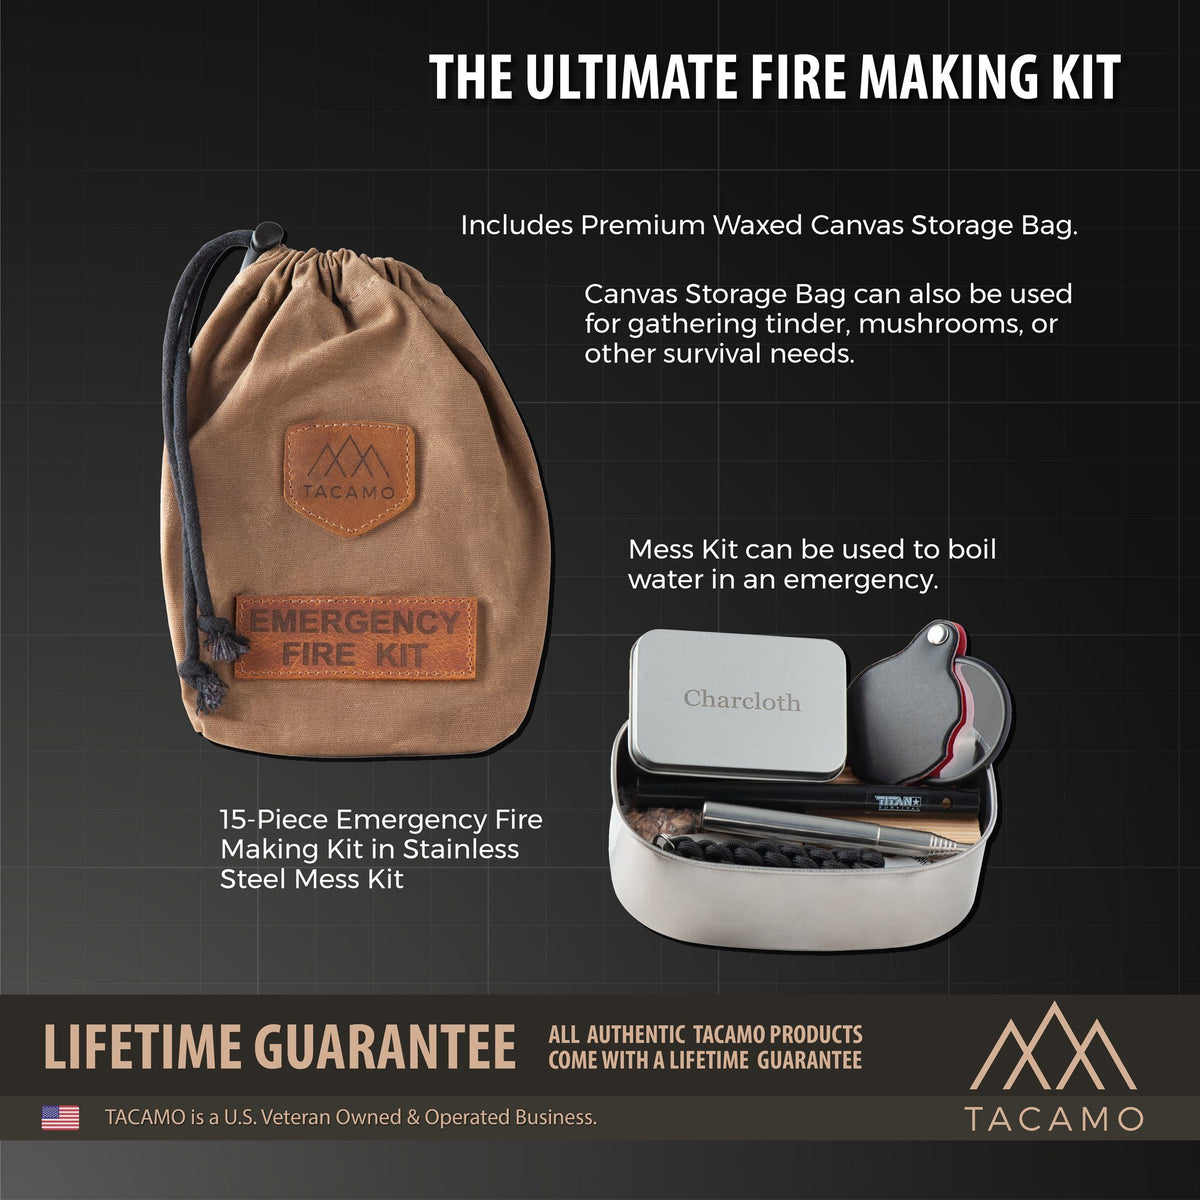 15-Piece Emergency Fire Kit Combustion TACAMO